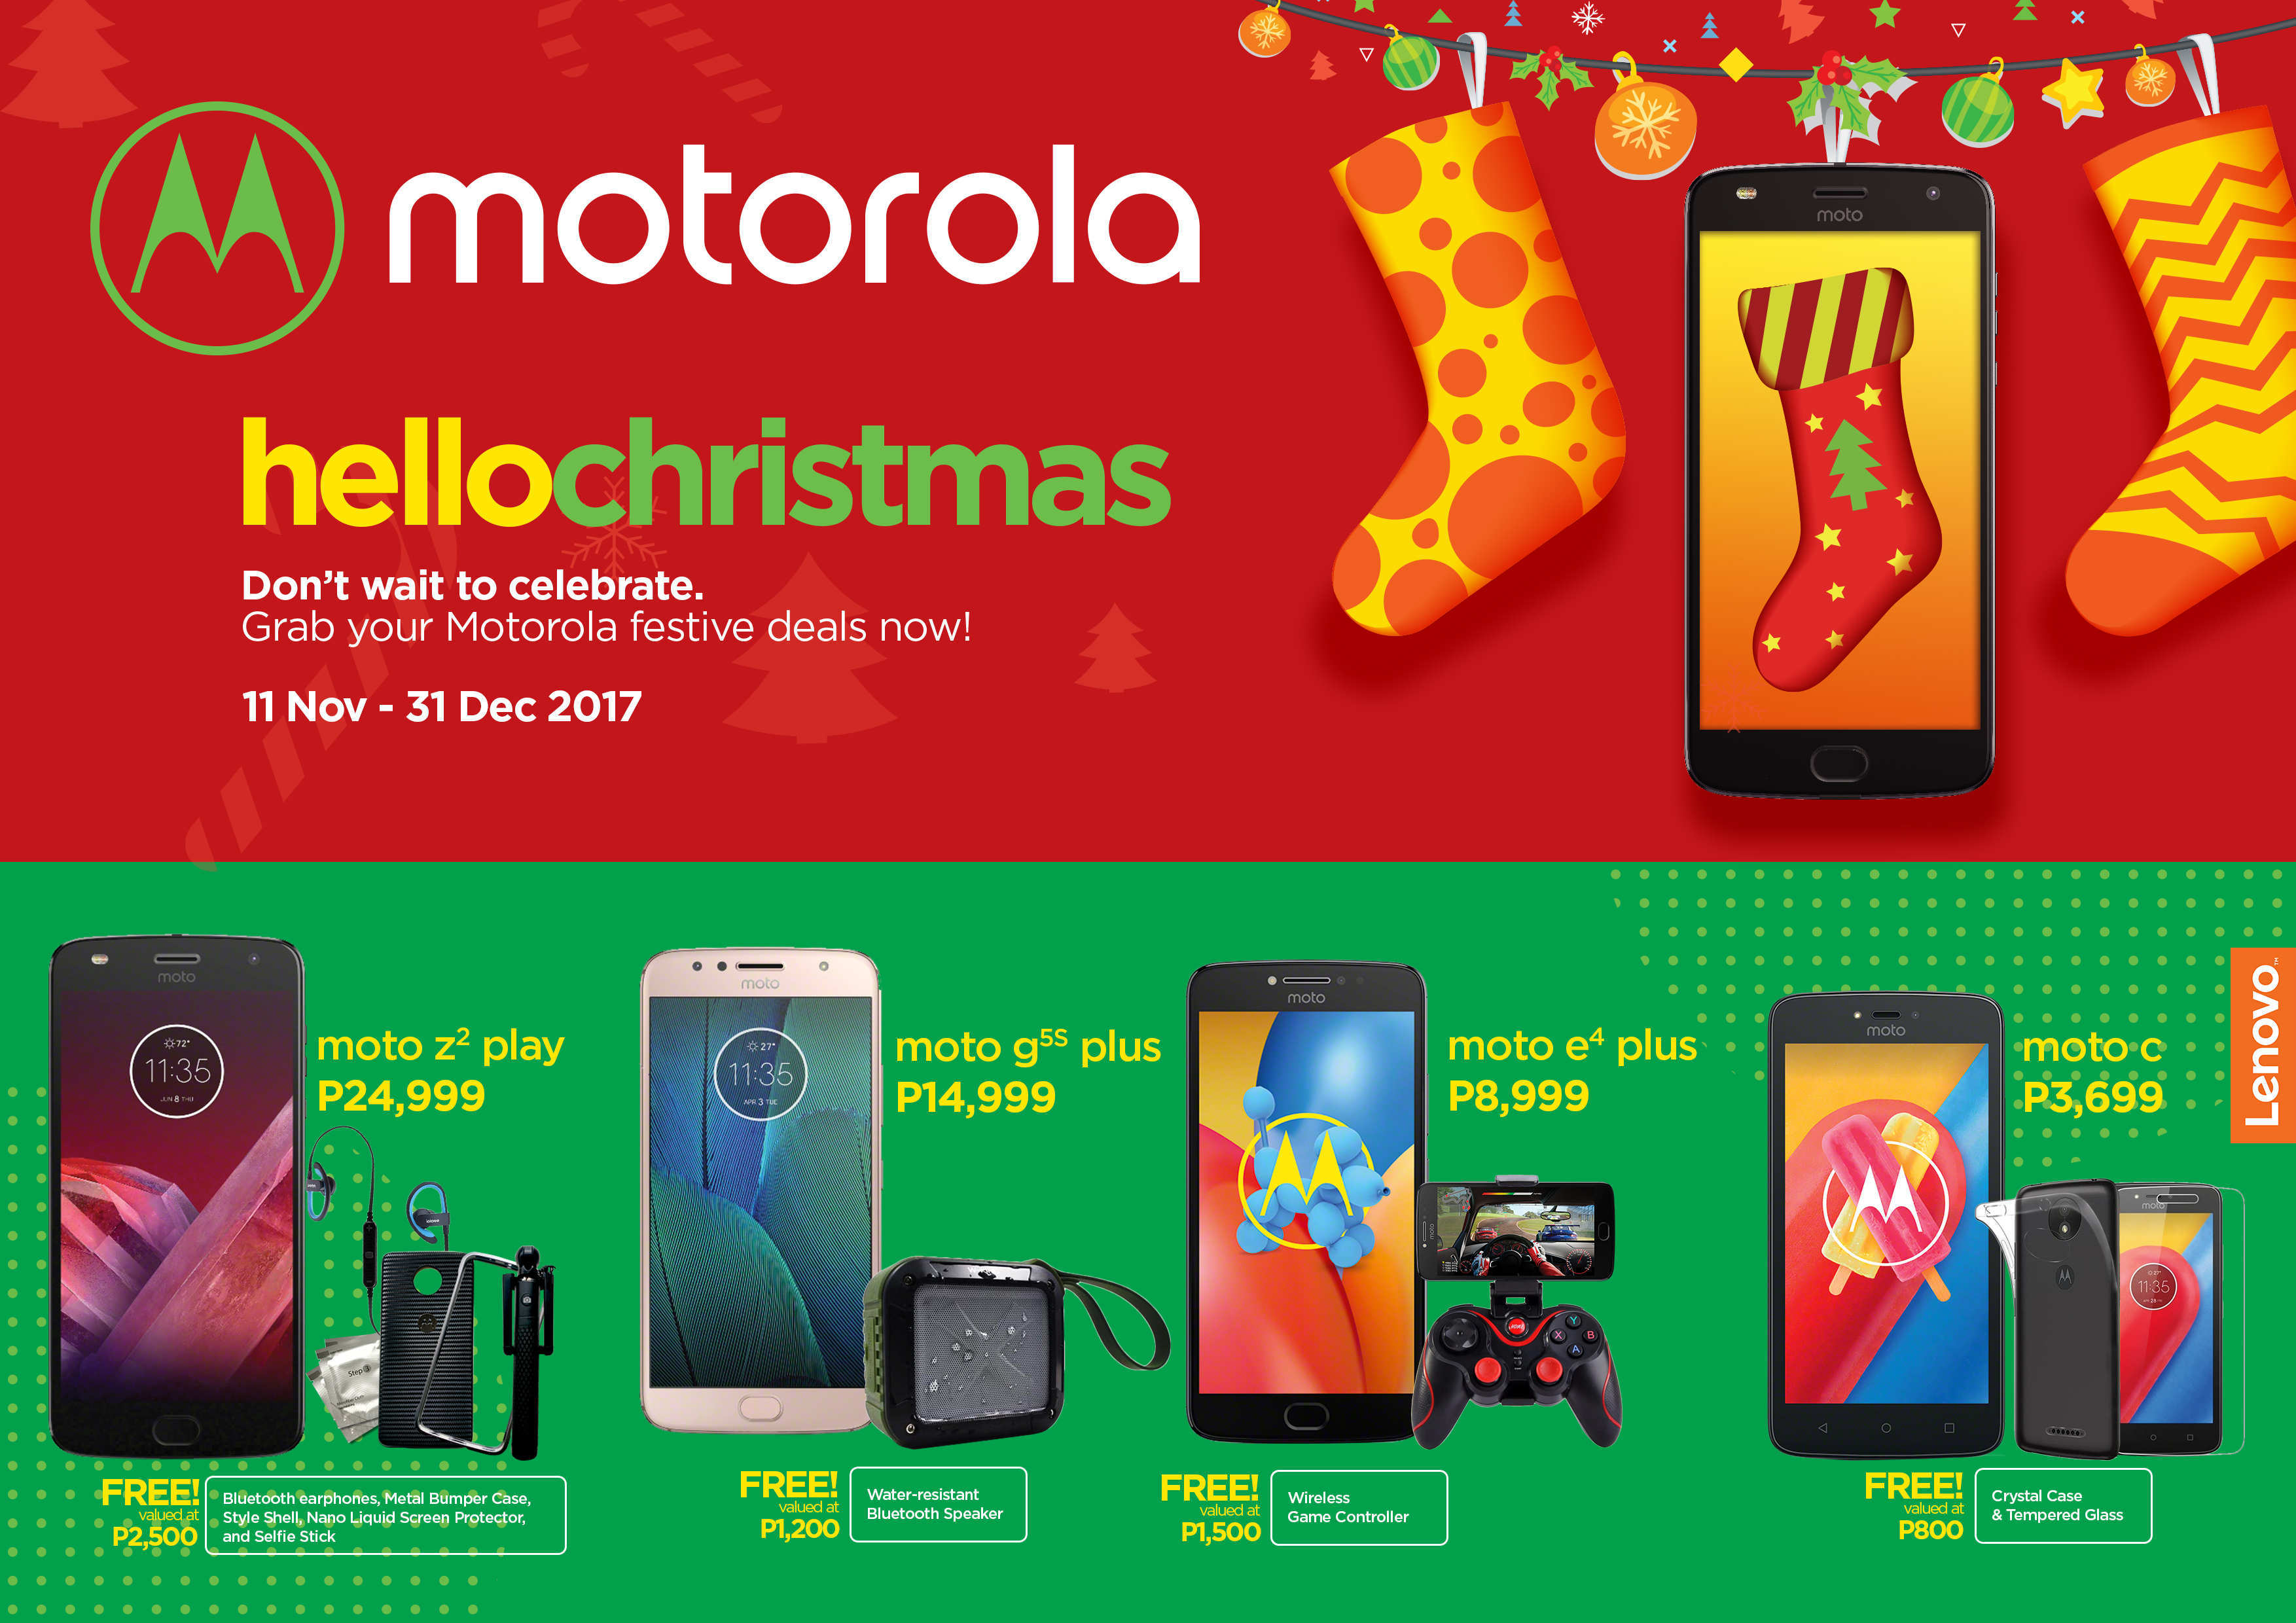 HelloChristmas! Celebrate the season with exciting freebies from Motorola smartphones